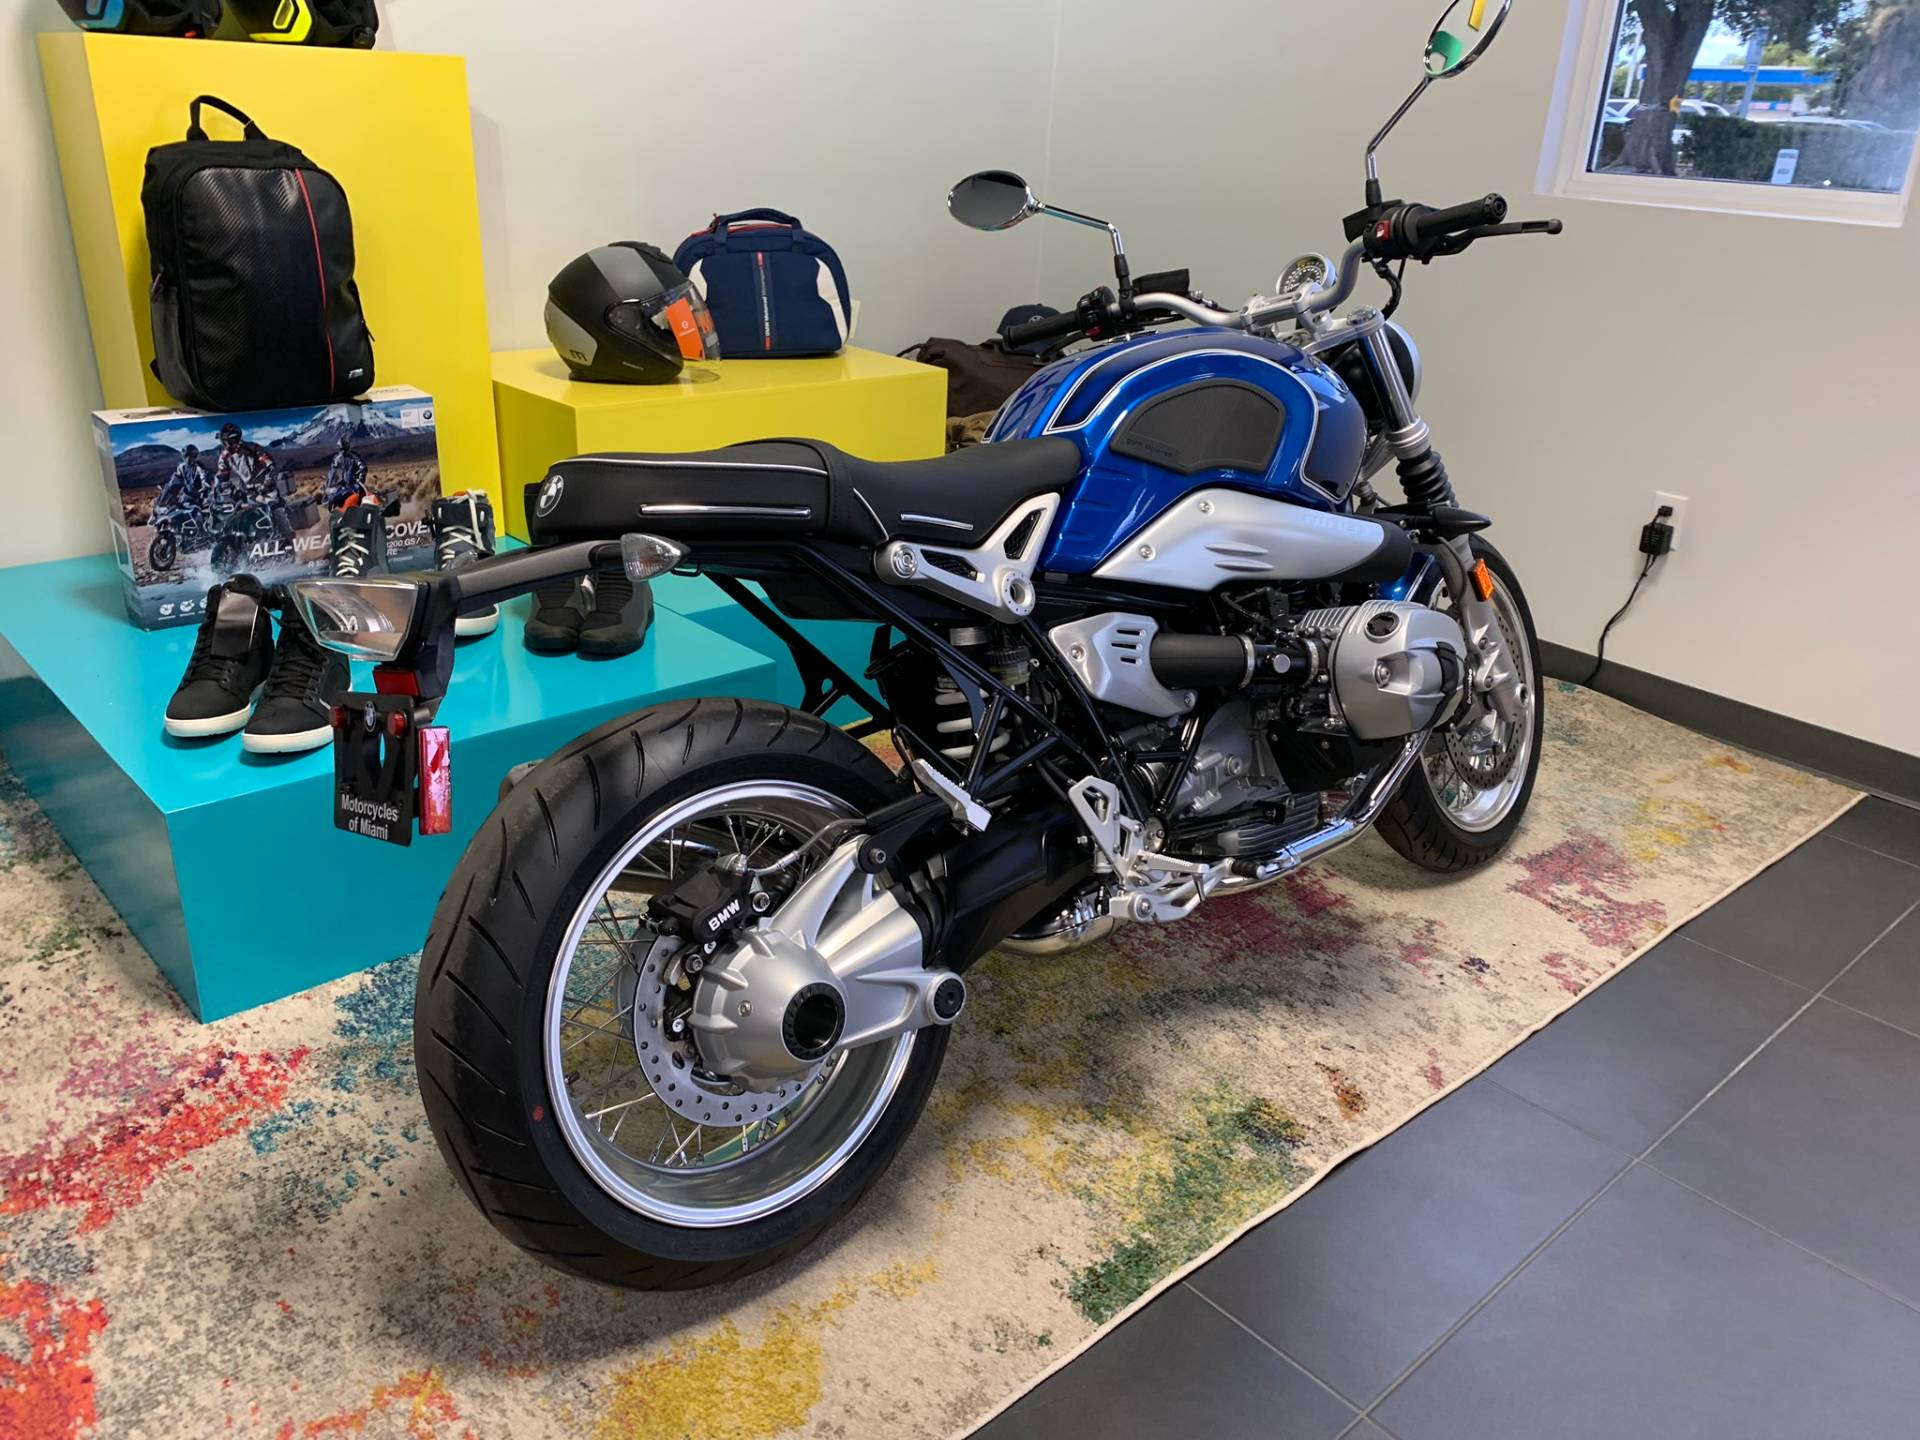 New 2020 2019 BMW R NineT for sale, BMW for sale, BMW Motorcycle Café Racer, new BMW Caffe, Cafe Racer, BMW. BMW Motorcycles of Miami, Motorcycles of Miami, Motorcycles Miami, New Motorcycles, Used Motorcycles, pre-owned. #BMWMotorcyclesOfMiami #MotorcyclesOfMiami. - Photo 11